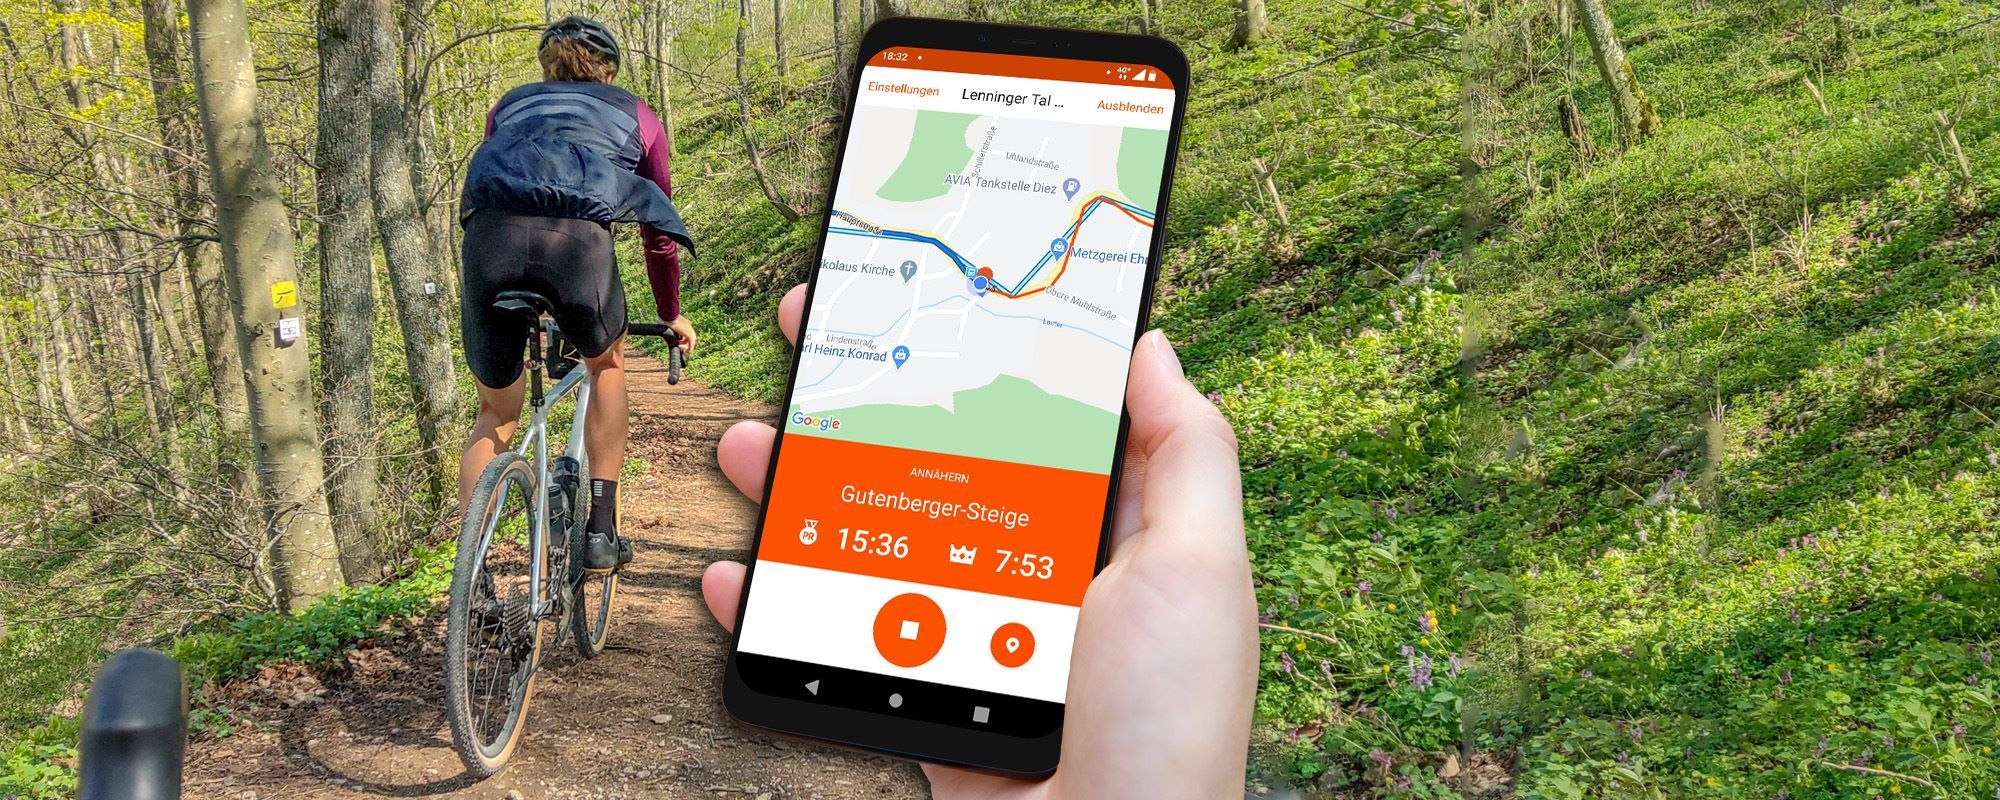 Strava App & Route Planner in Test - Training, Segments, Tour Diary (Complete Guide)